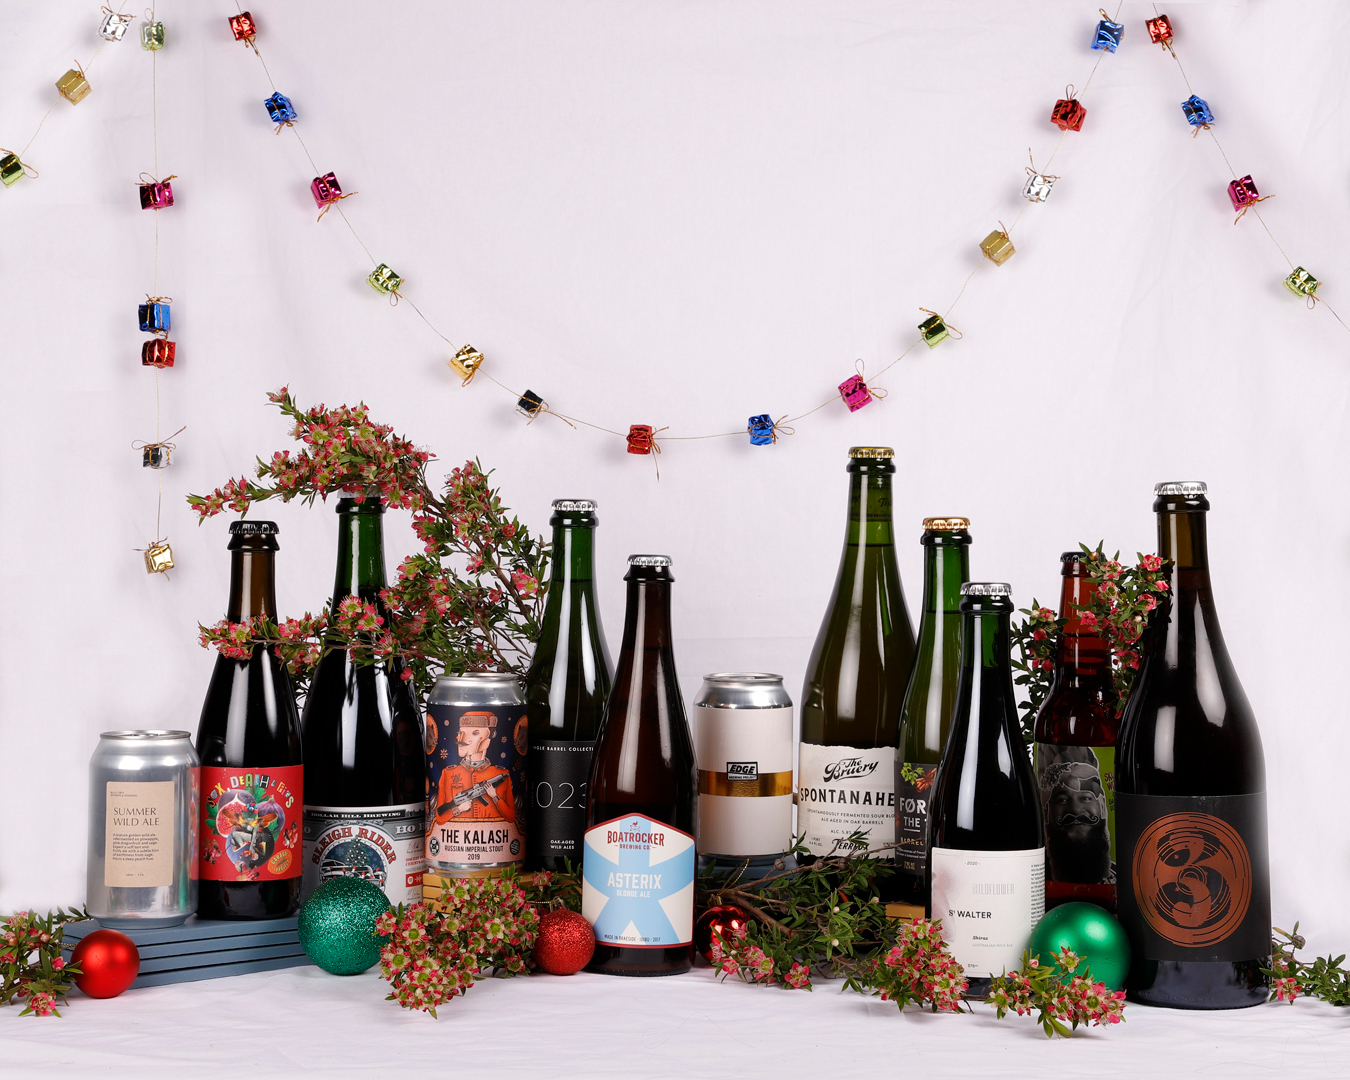 Blackhearts' 12 Beers Of Christmas